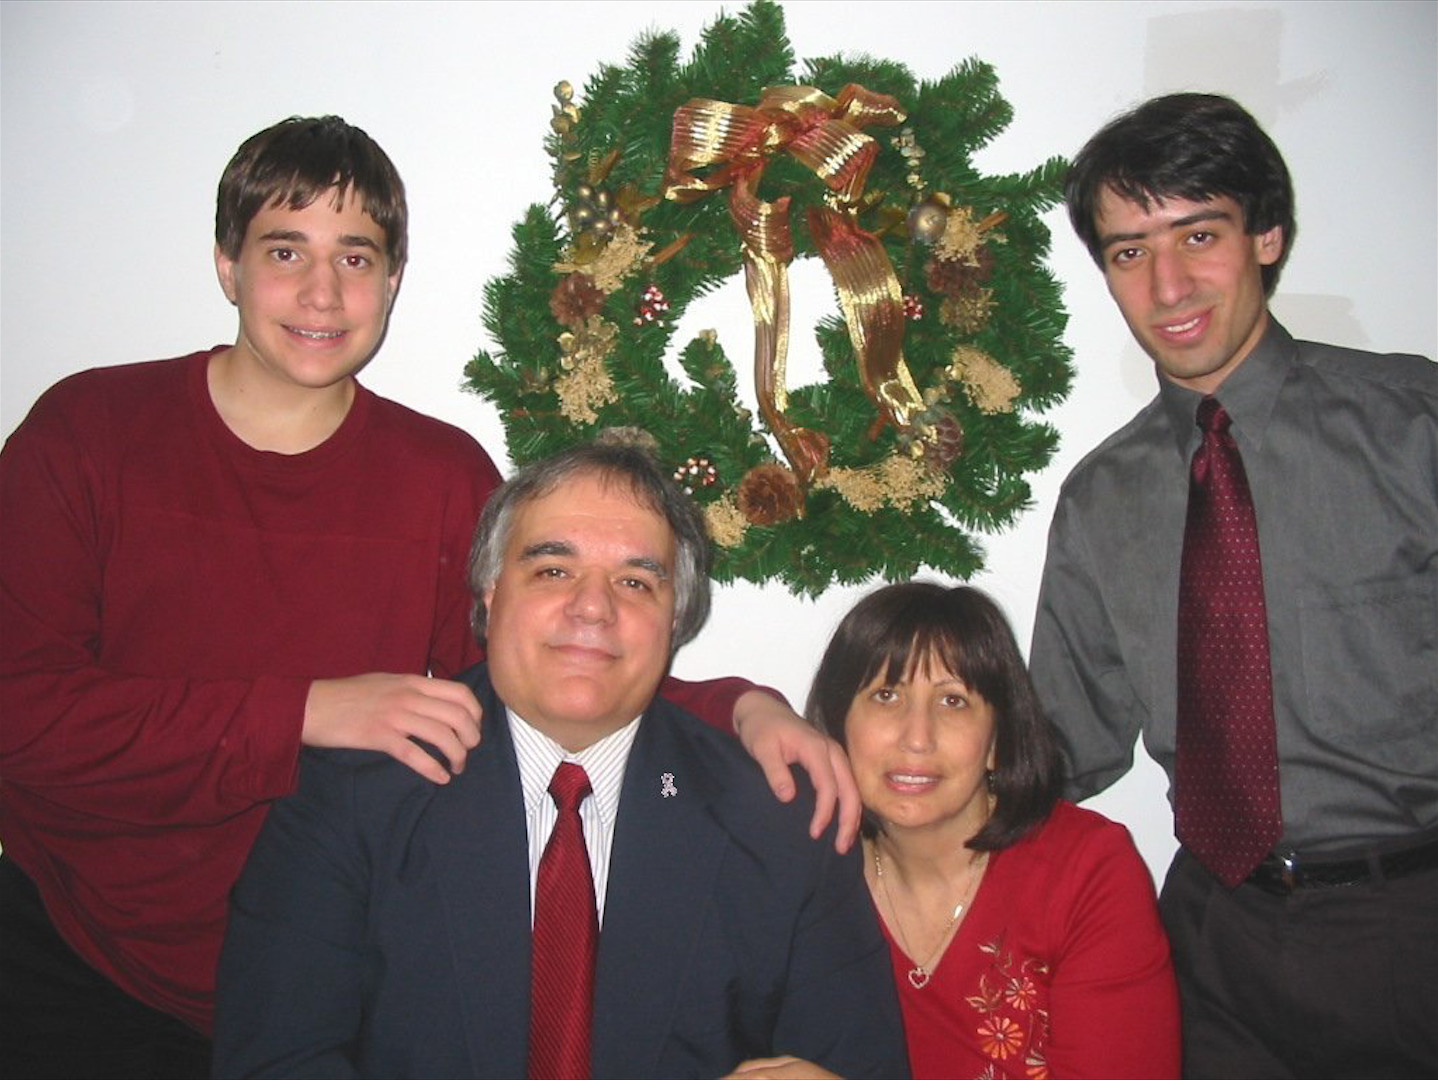 Justin, left, Joe, Susan and Matthew Satriano celebrated Christmas for one of the last times as a family before Susan died of breast cancer in 2005.